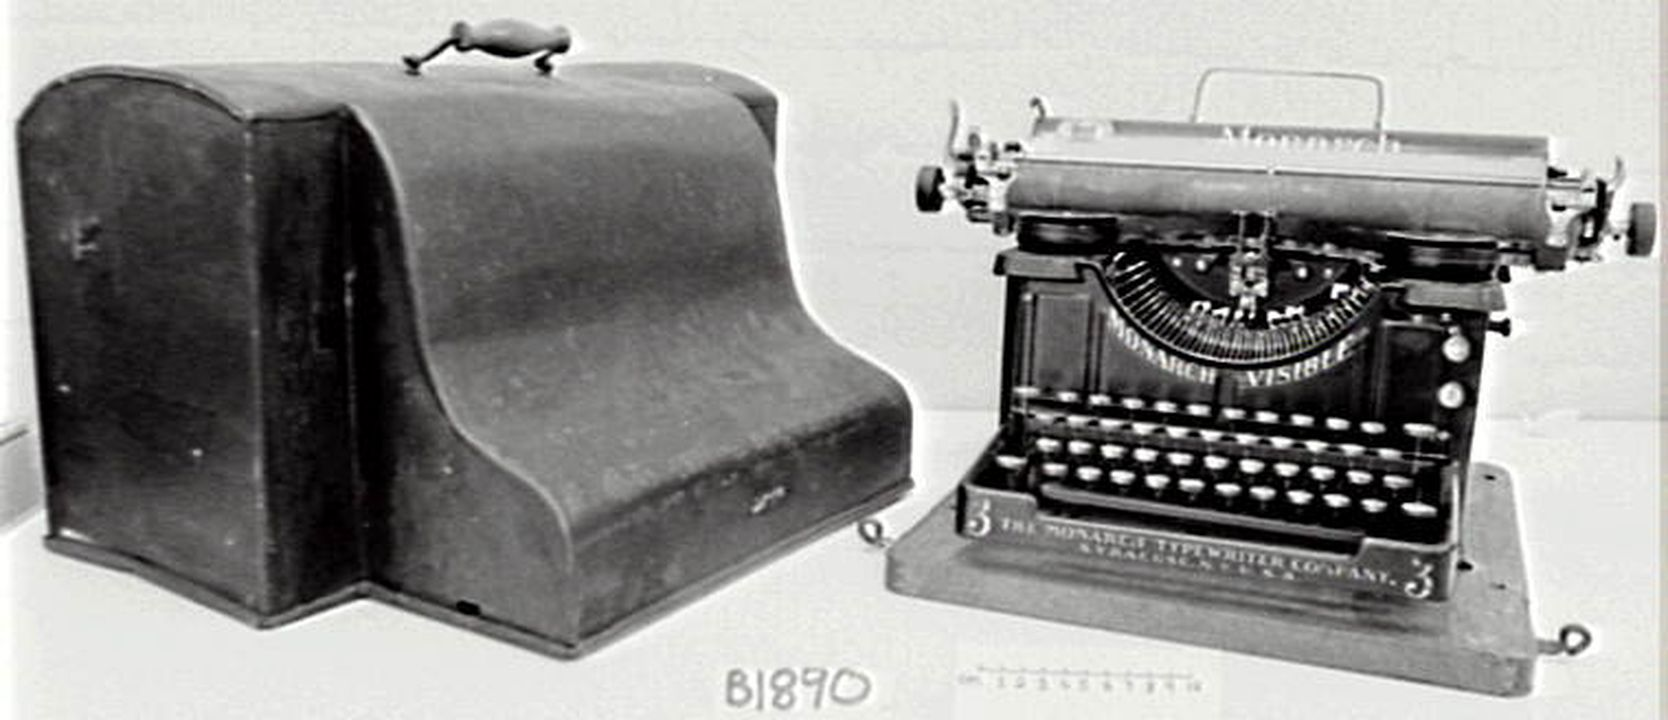 B1890 Typewriter 'Monarch Visible' made by [3] The Monarch Visible Co., Syracuse N.Y., U.S.A. no. 21134. In carrying case. 14 1/2' carriage (SB). ... in metal carrying case ... (LC).. Click to enlarge.